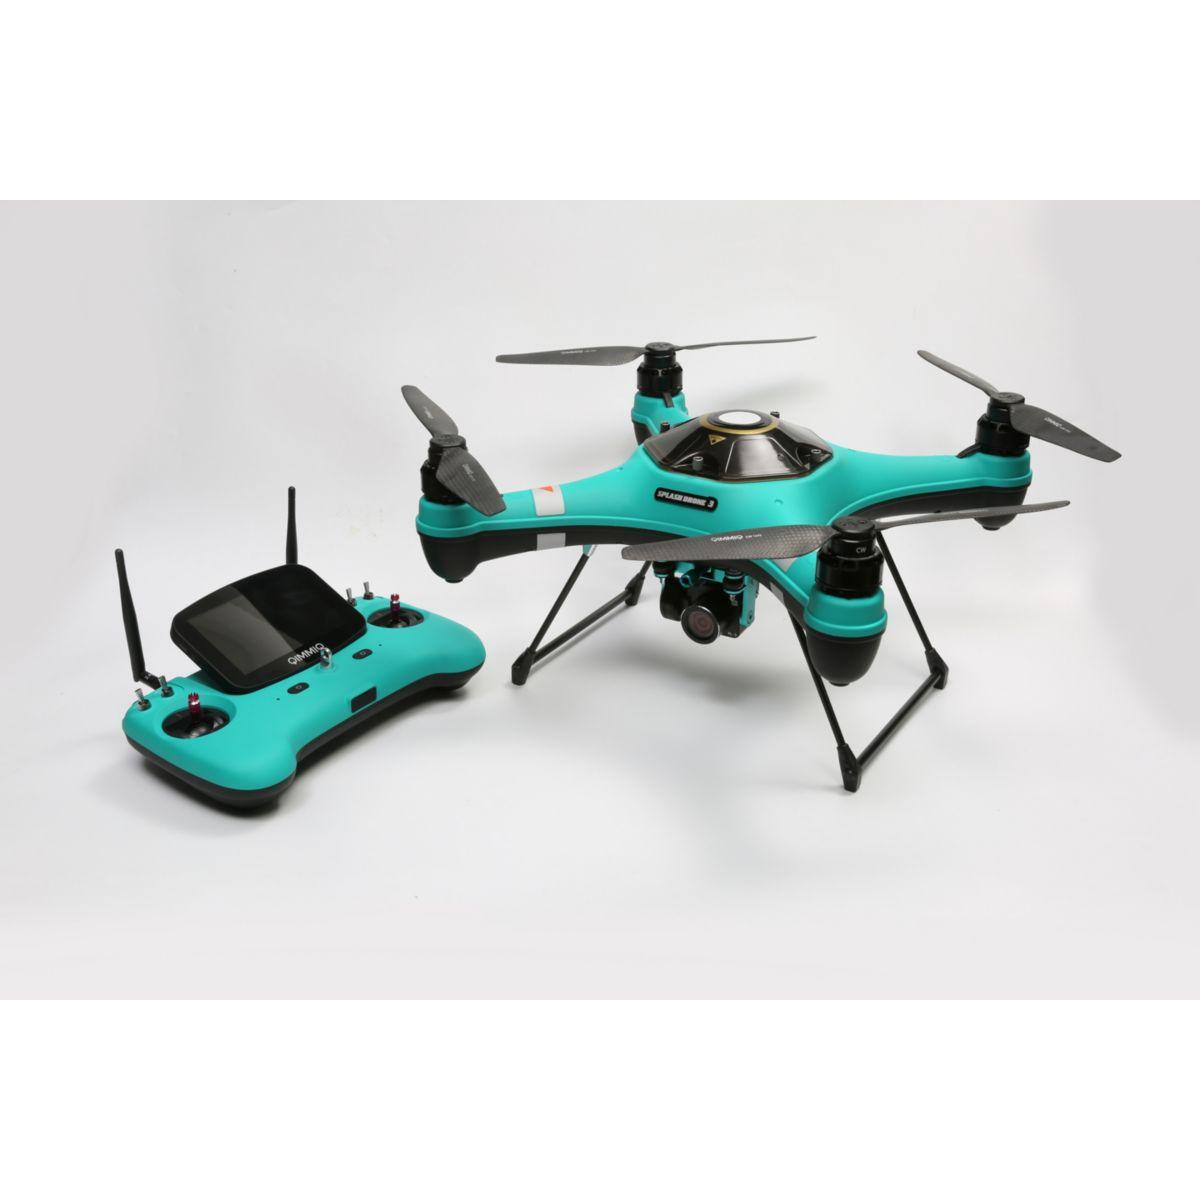 Drone qimmiq splash drone 3 - 15% de remise imm�diate avec le code : deal15 (photo)